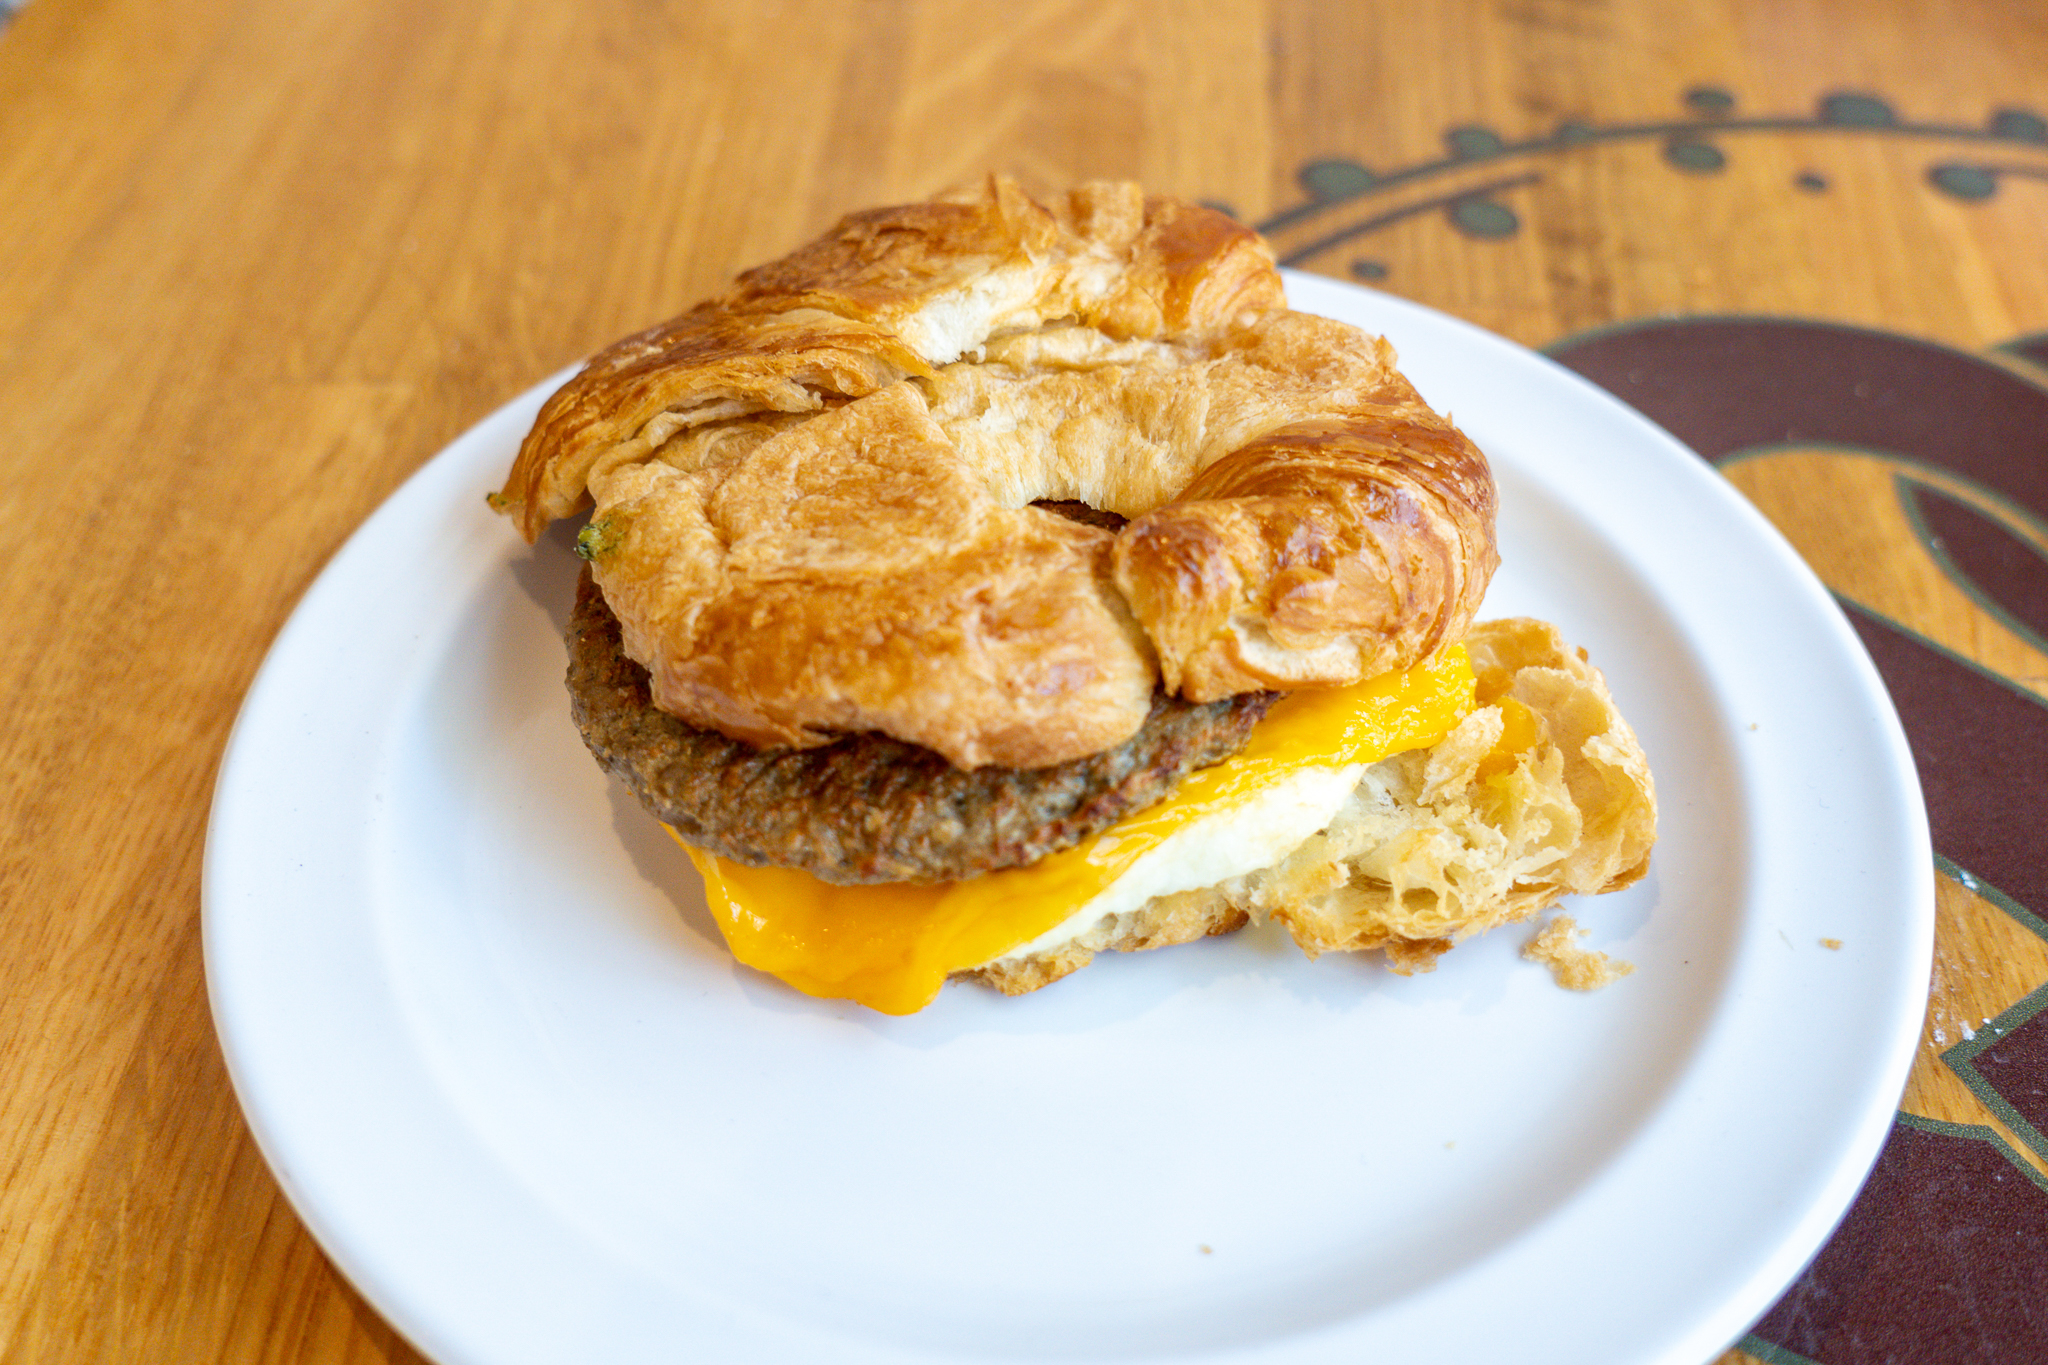 Sorrento Sweets The Sausage & Cheddar Breakfast Sandwich